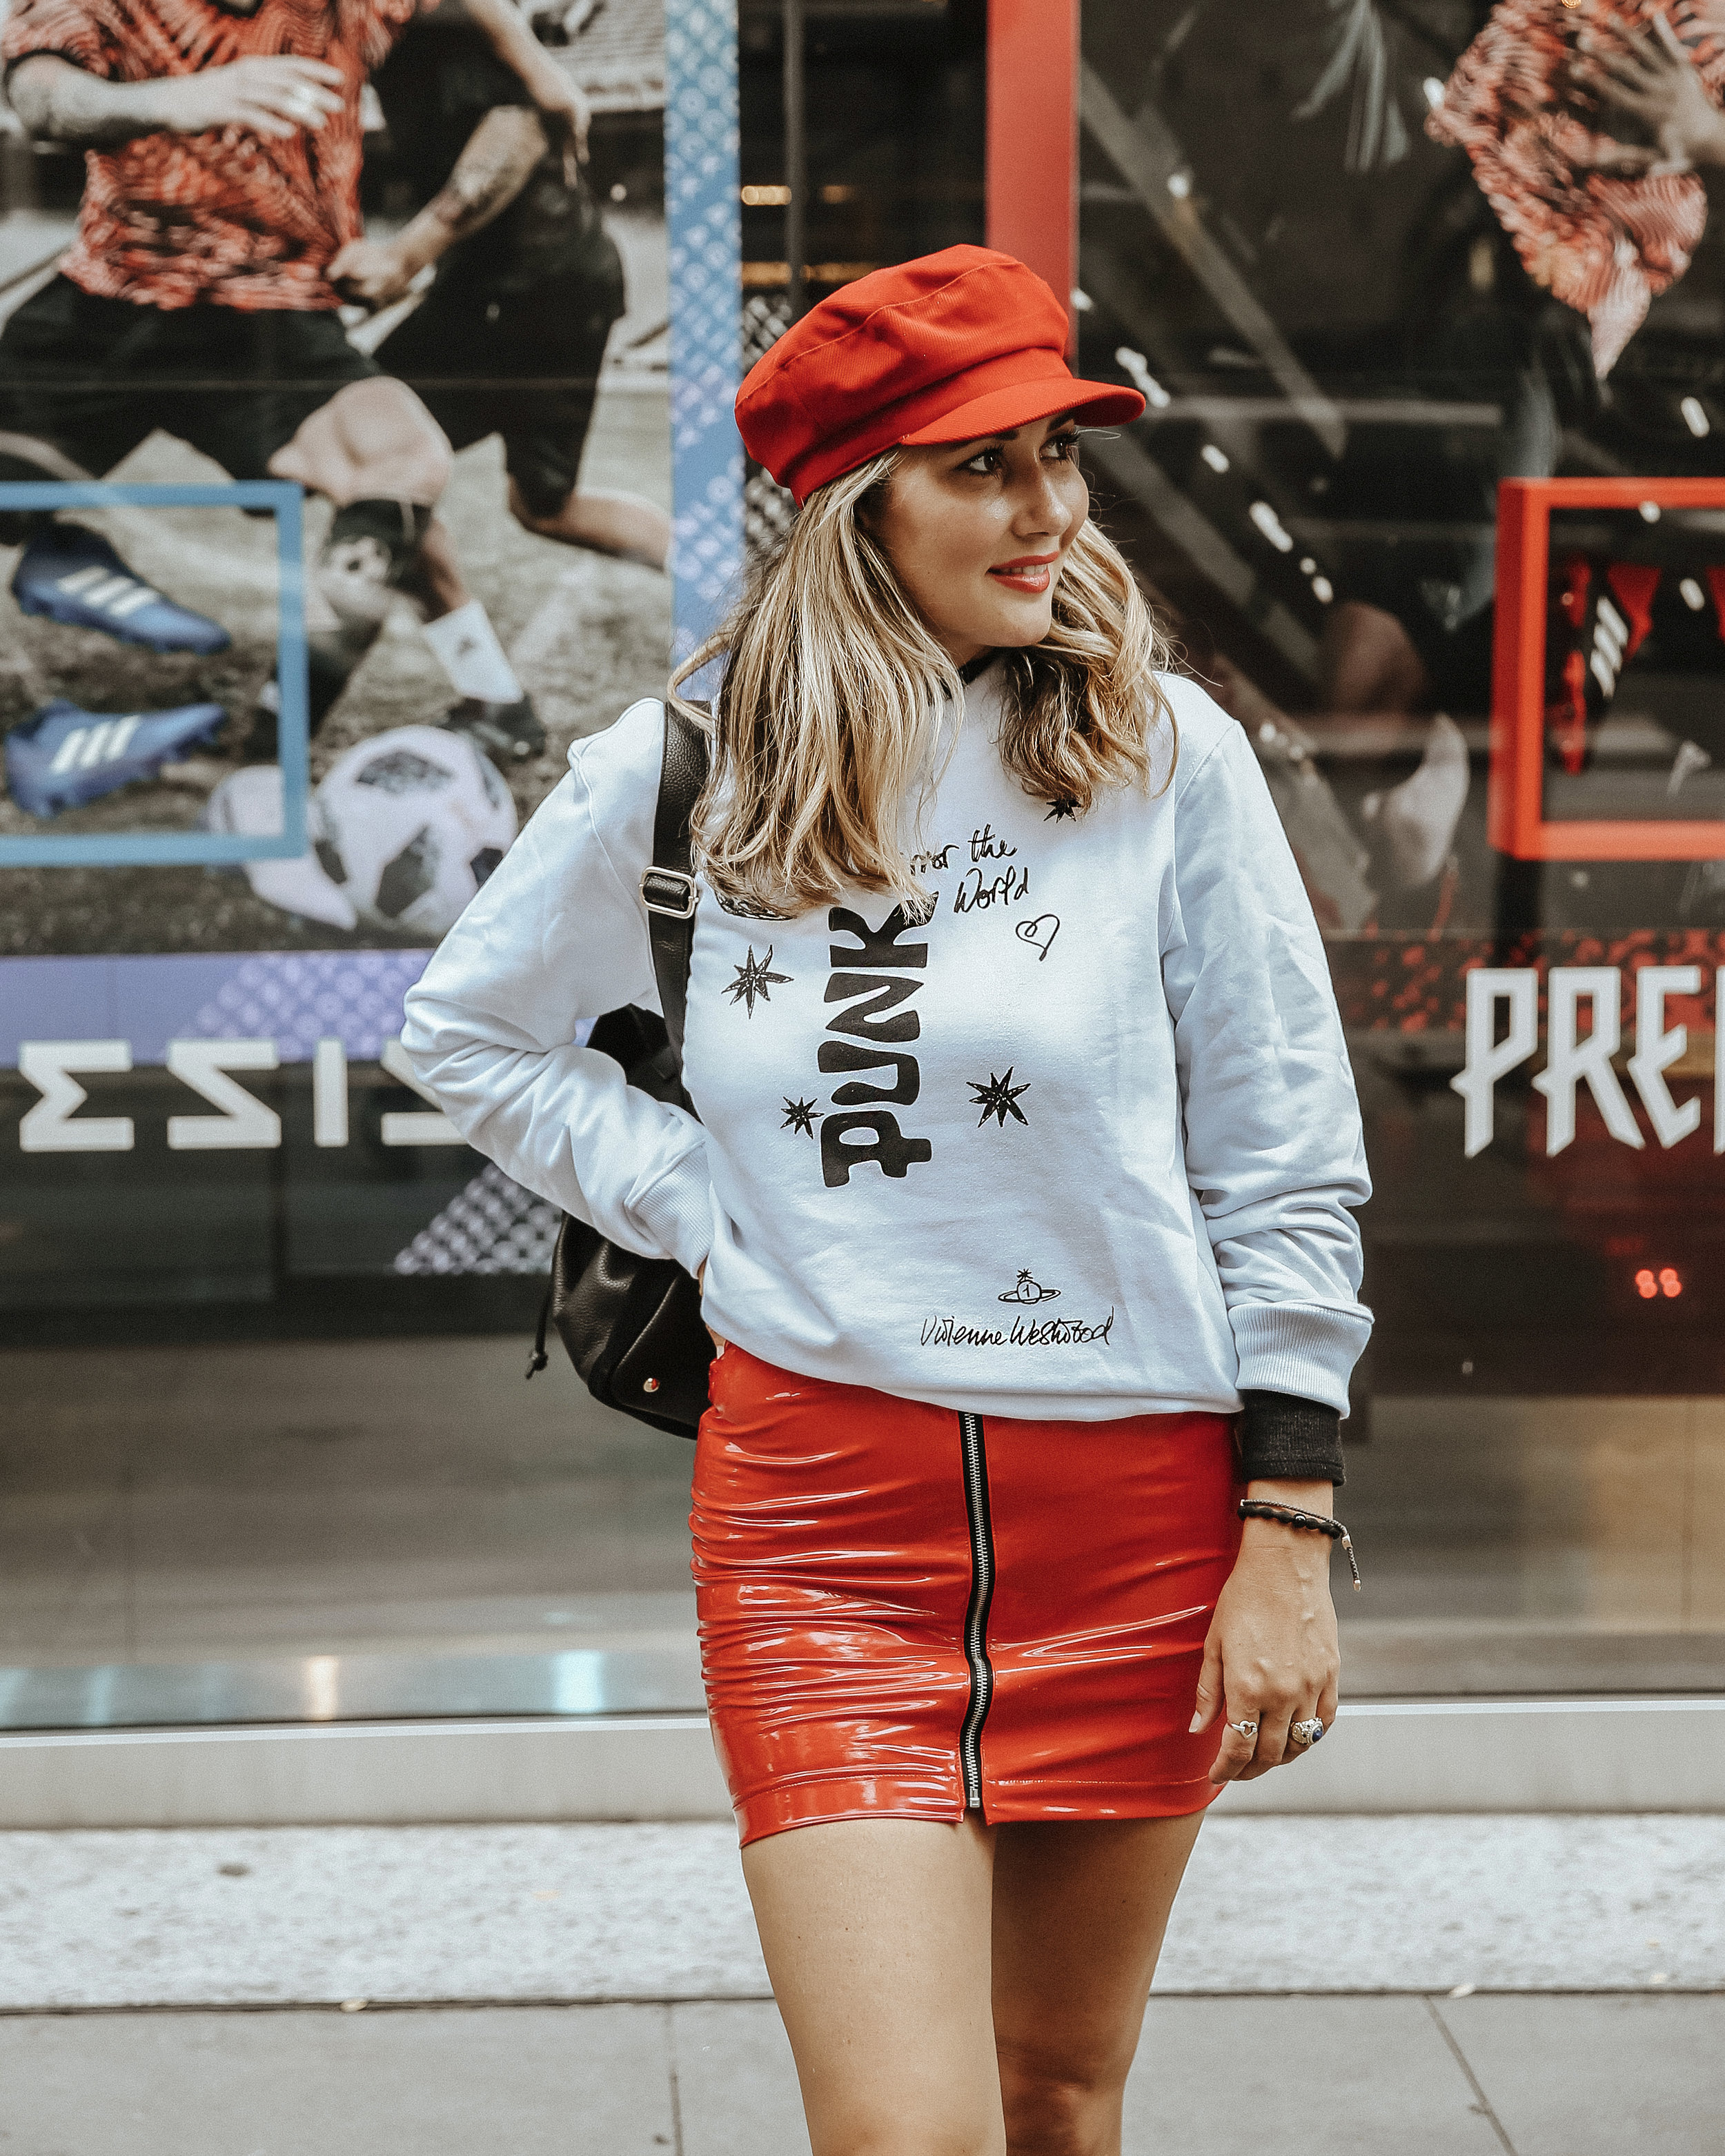 The Style Sauce // Fashion blogger // Vivienne Westwood sweatshirt // Yoox Soccer Couture // NYC Street style